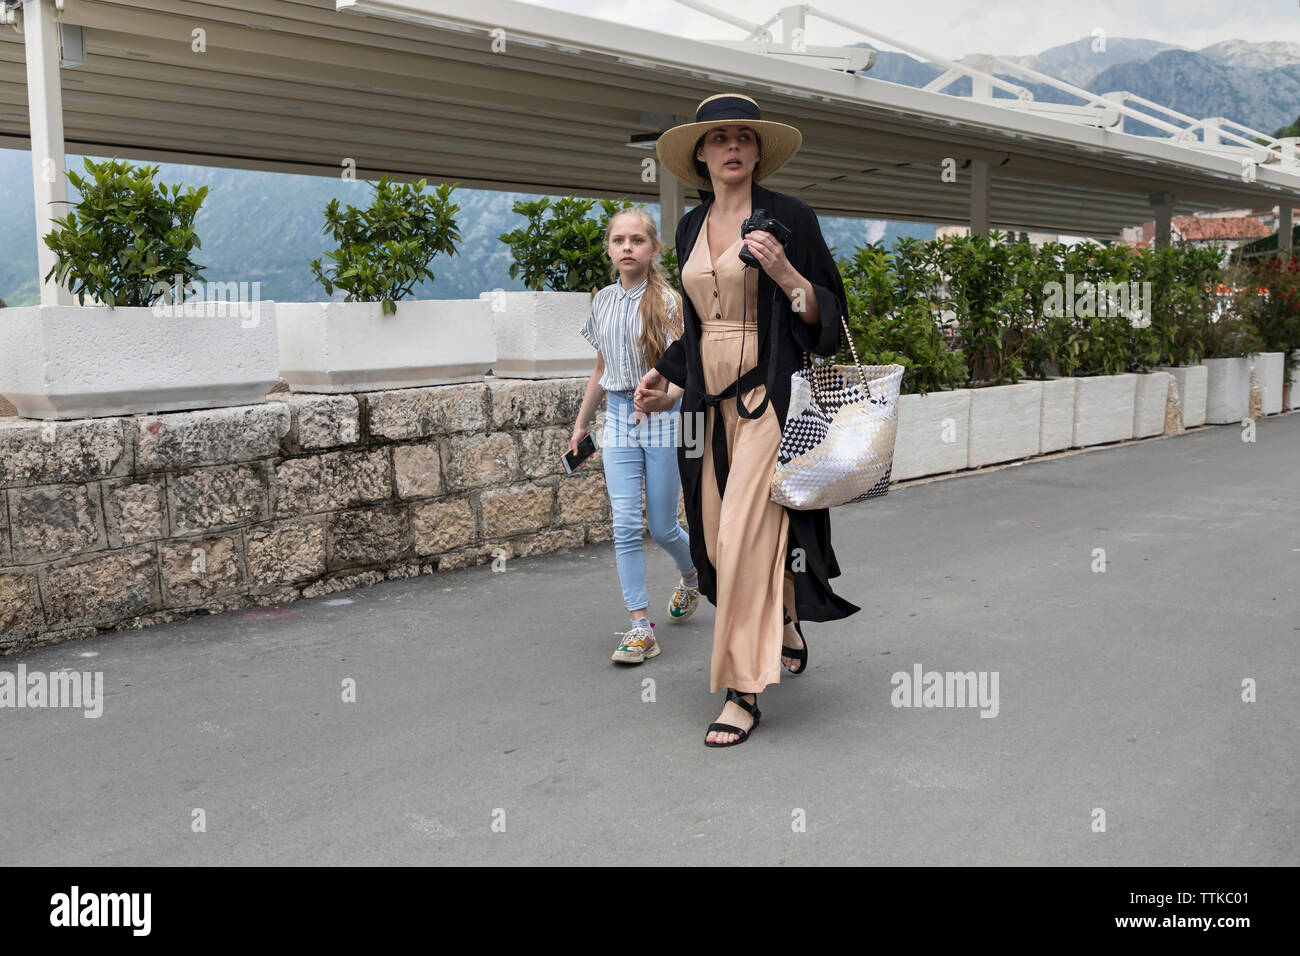 Perast, Montenegro, May 3rd 2019: Mother and daughter on vacation walking down the street - Stock Image